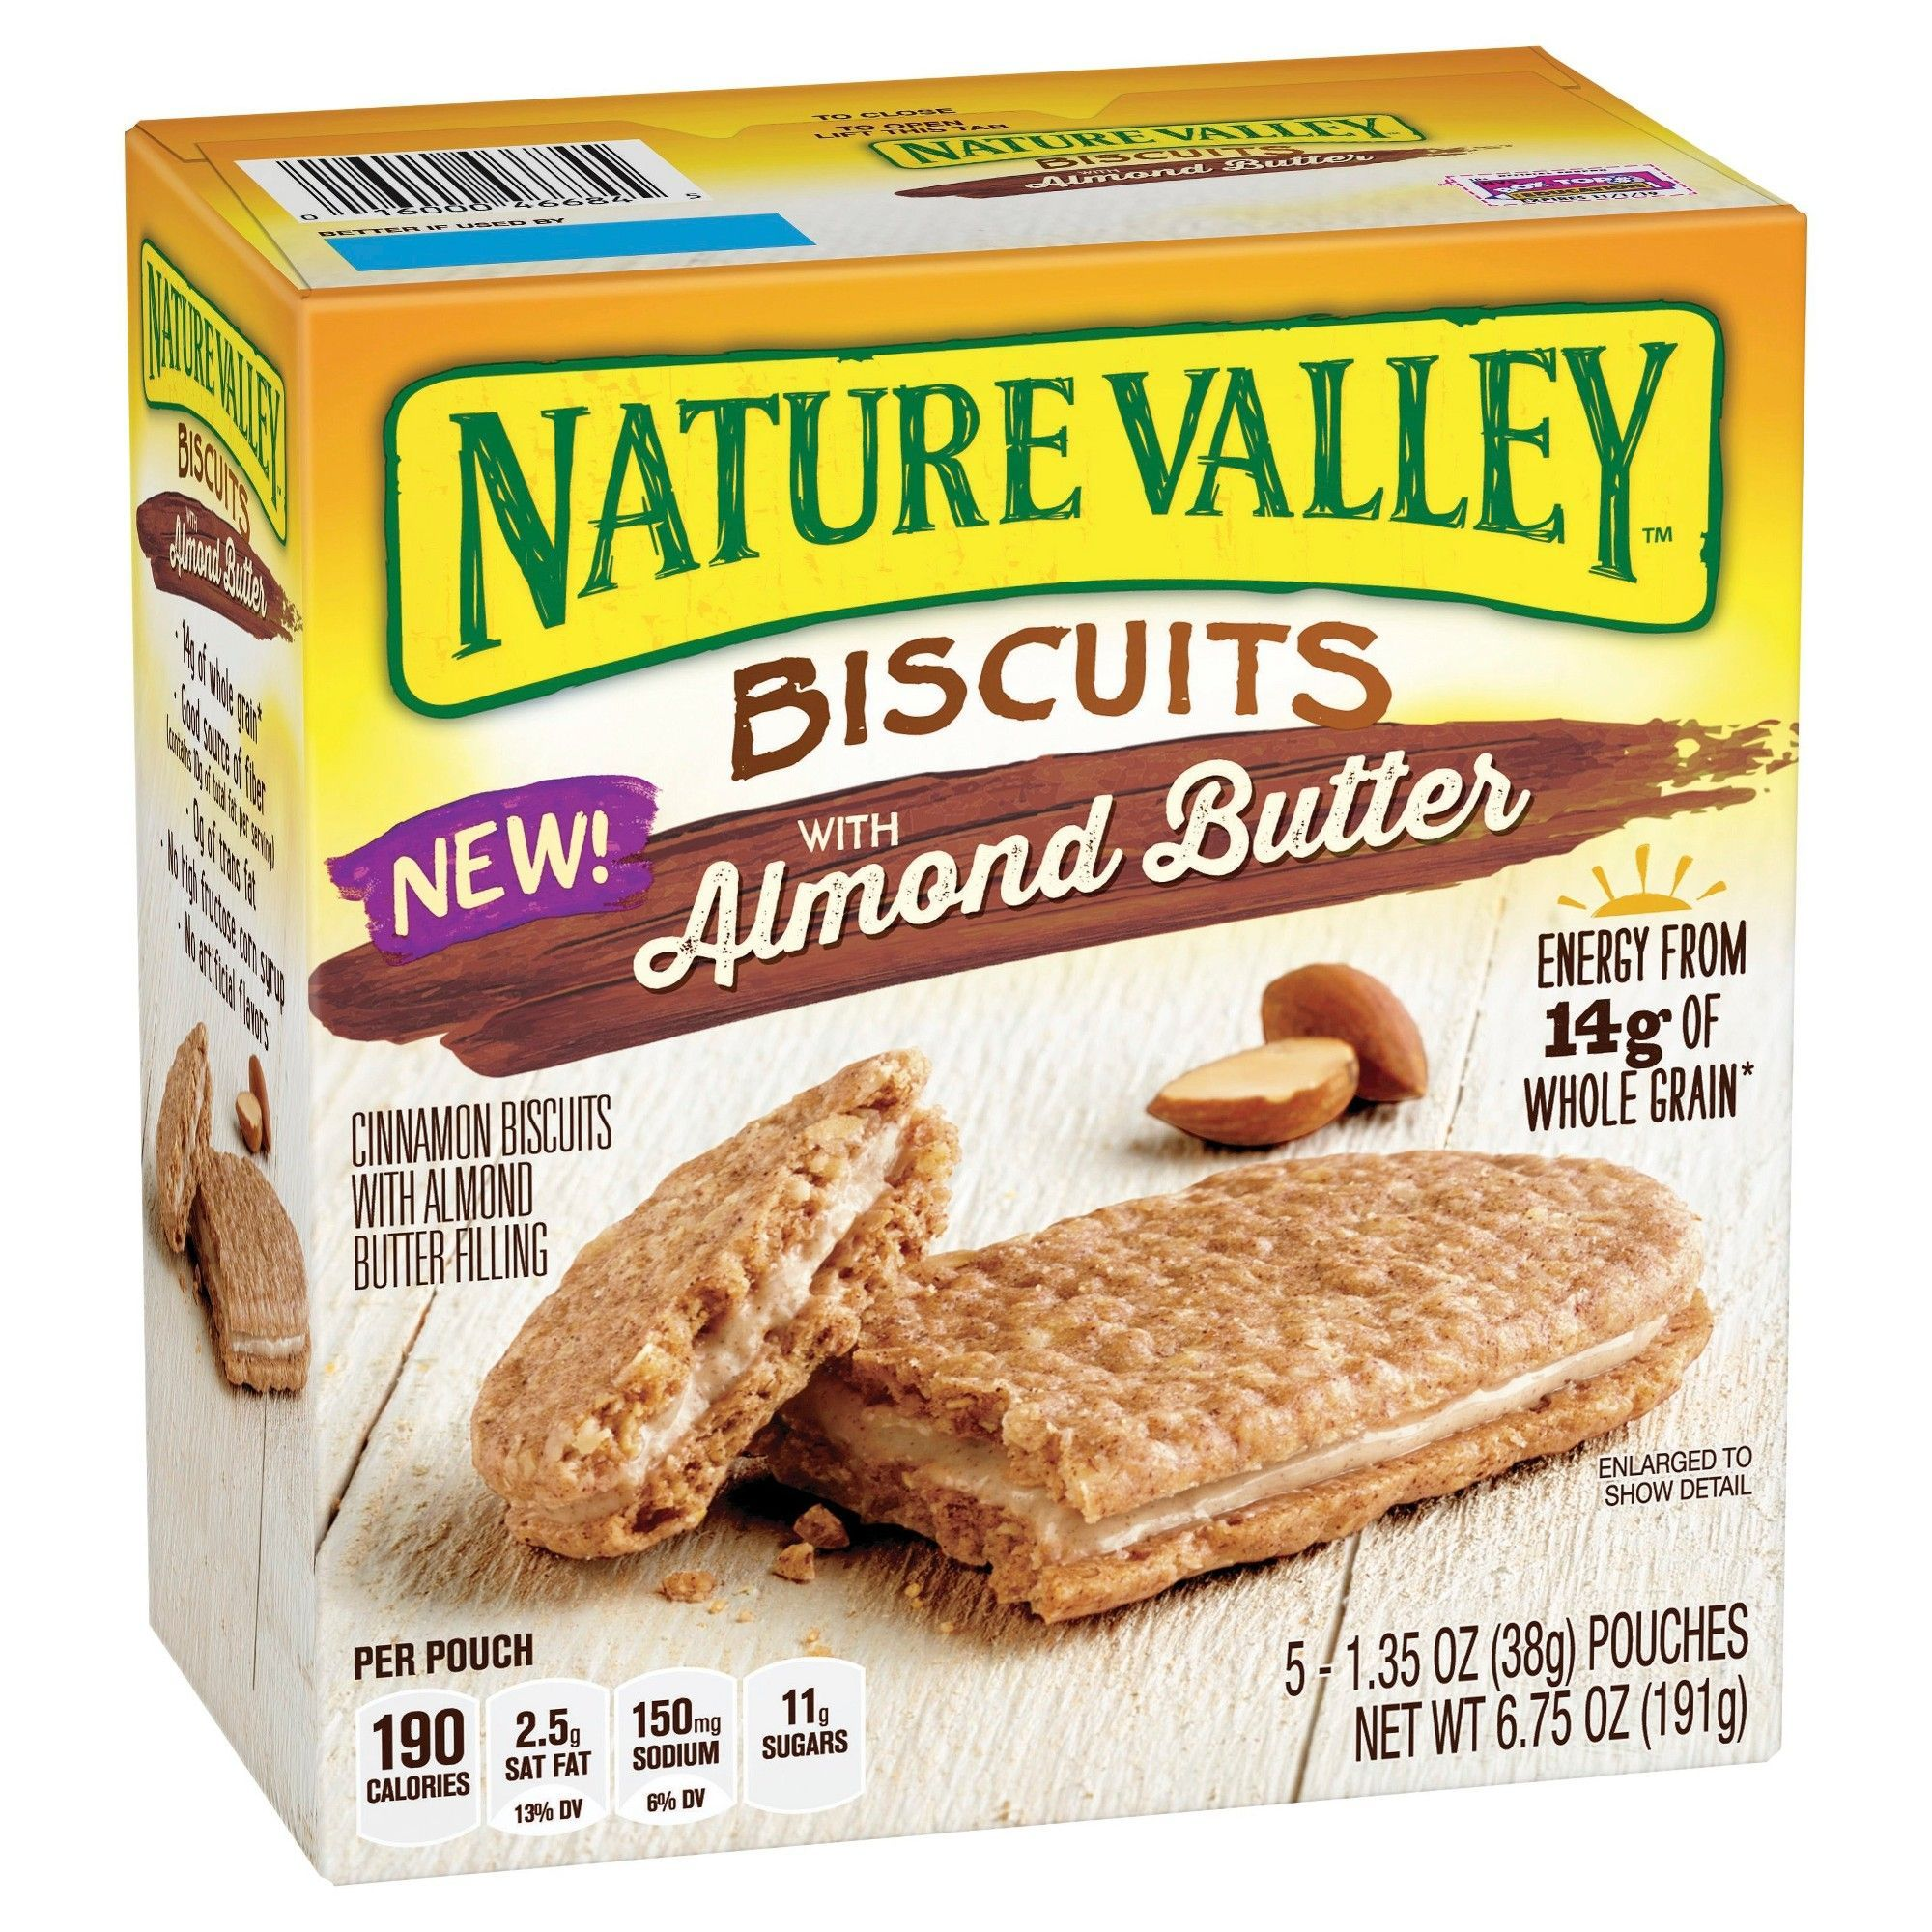 Nature Valley Almond Butter Biscuits 5ct Peanut Butter Biscuits Almond Butter Breakfast Biscuits